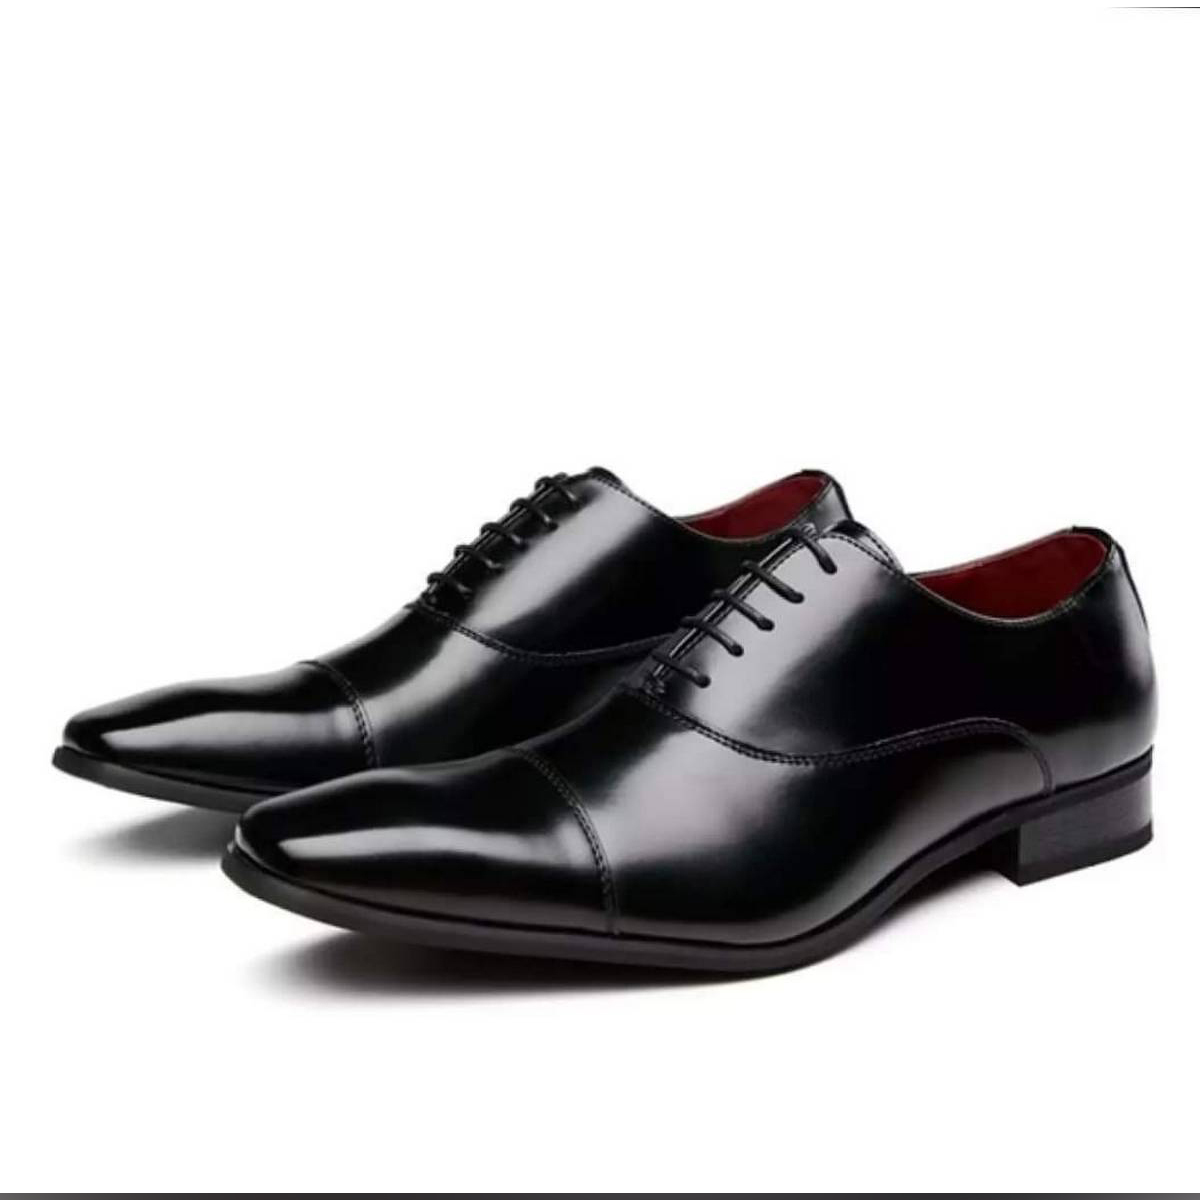 Breathable Pointed Toe Decent Elegant Formal Men Dress Shoes 2020 Patent Leather Office Wedding Shoes Man Oxfords